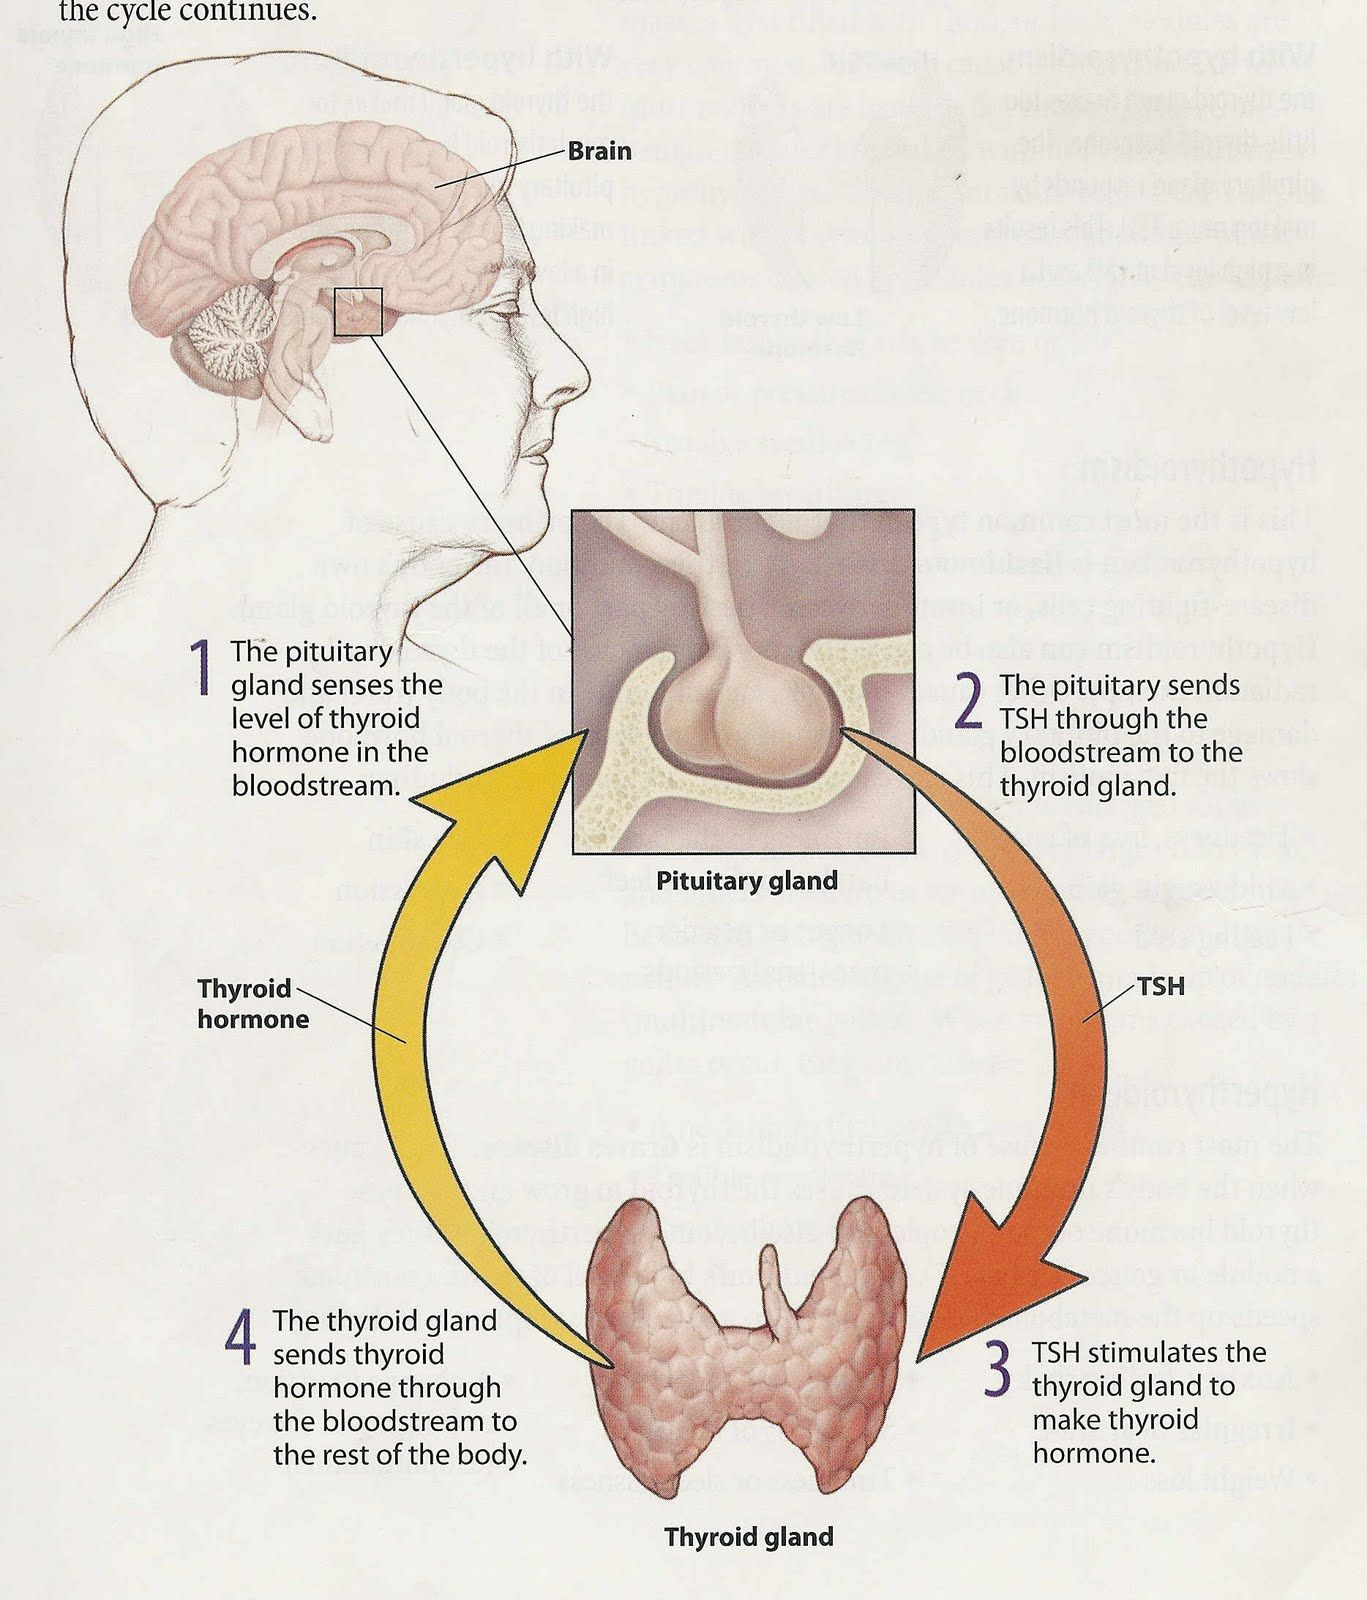 small resolution of pituitary here s how they work the pituitary gland monitors the